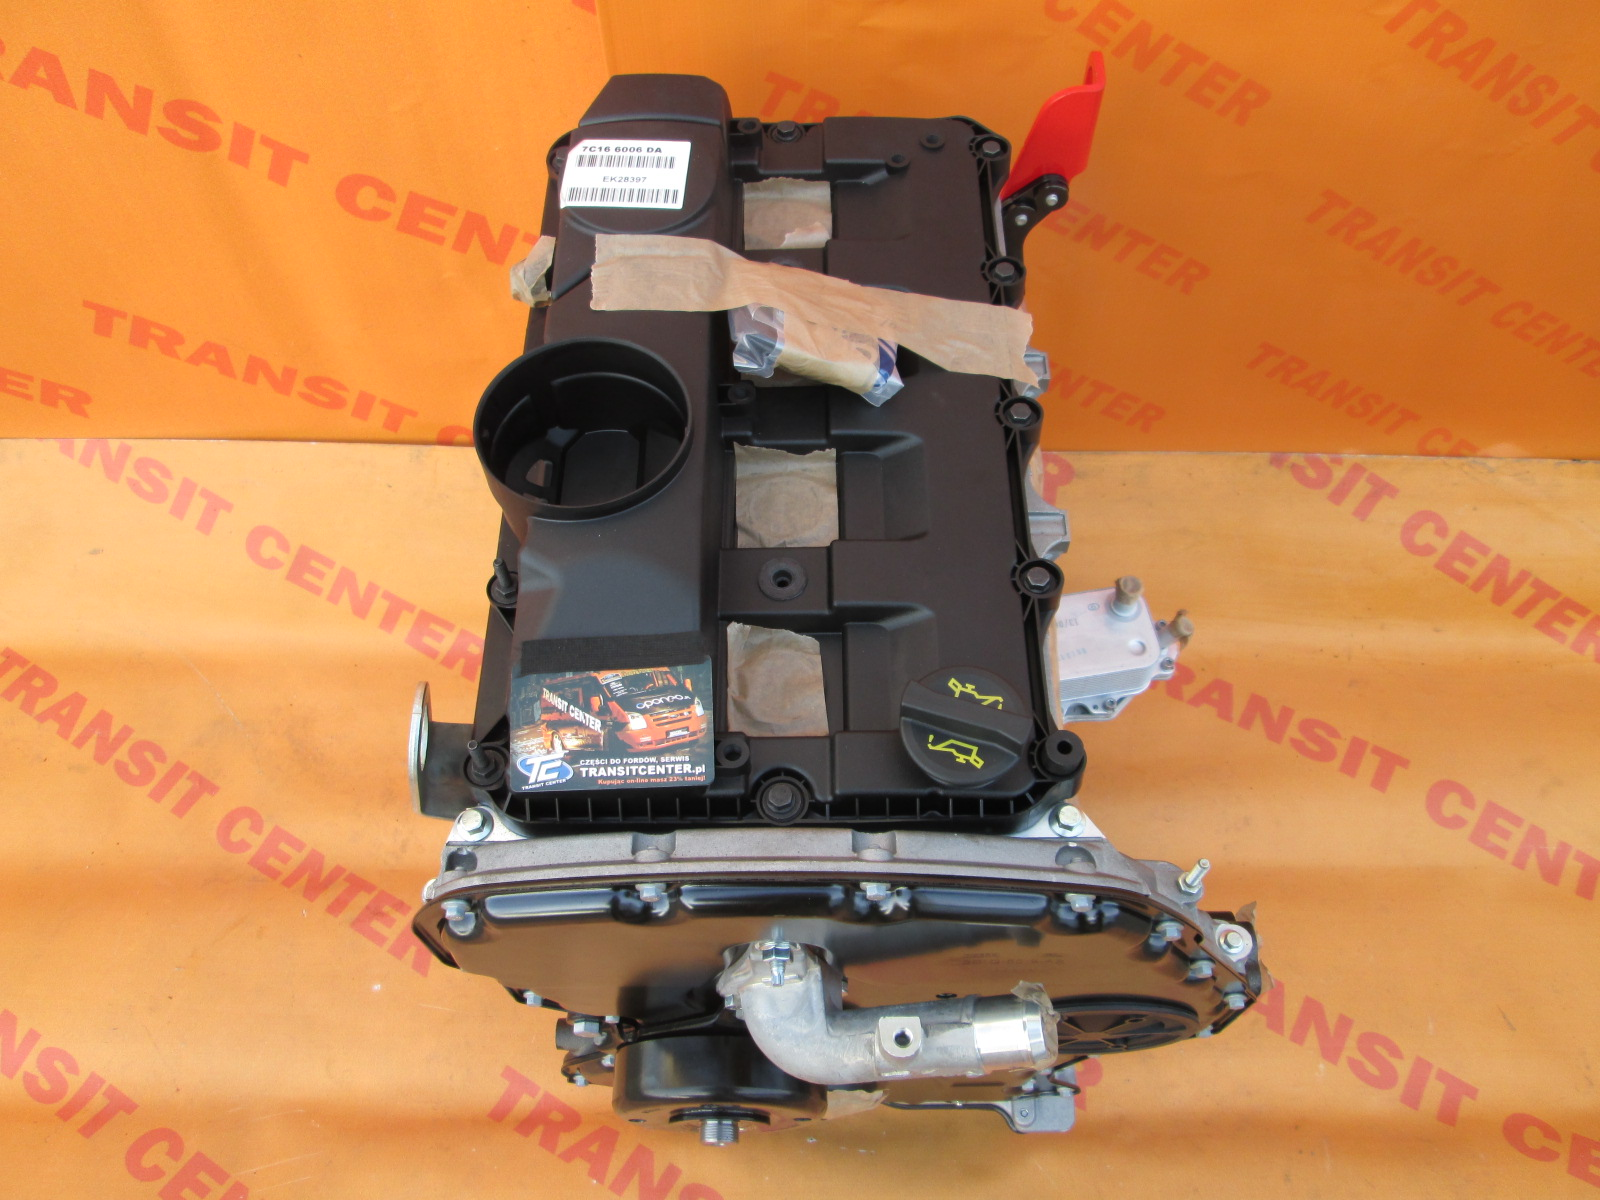 2013 Ford Transit Connect >> Engine 2.4 TDCI 140 HP Ford Transit 2006-2013